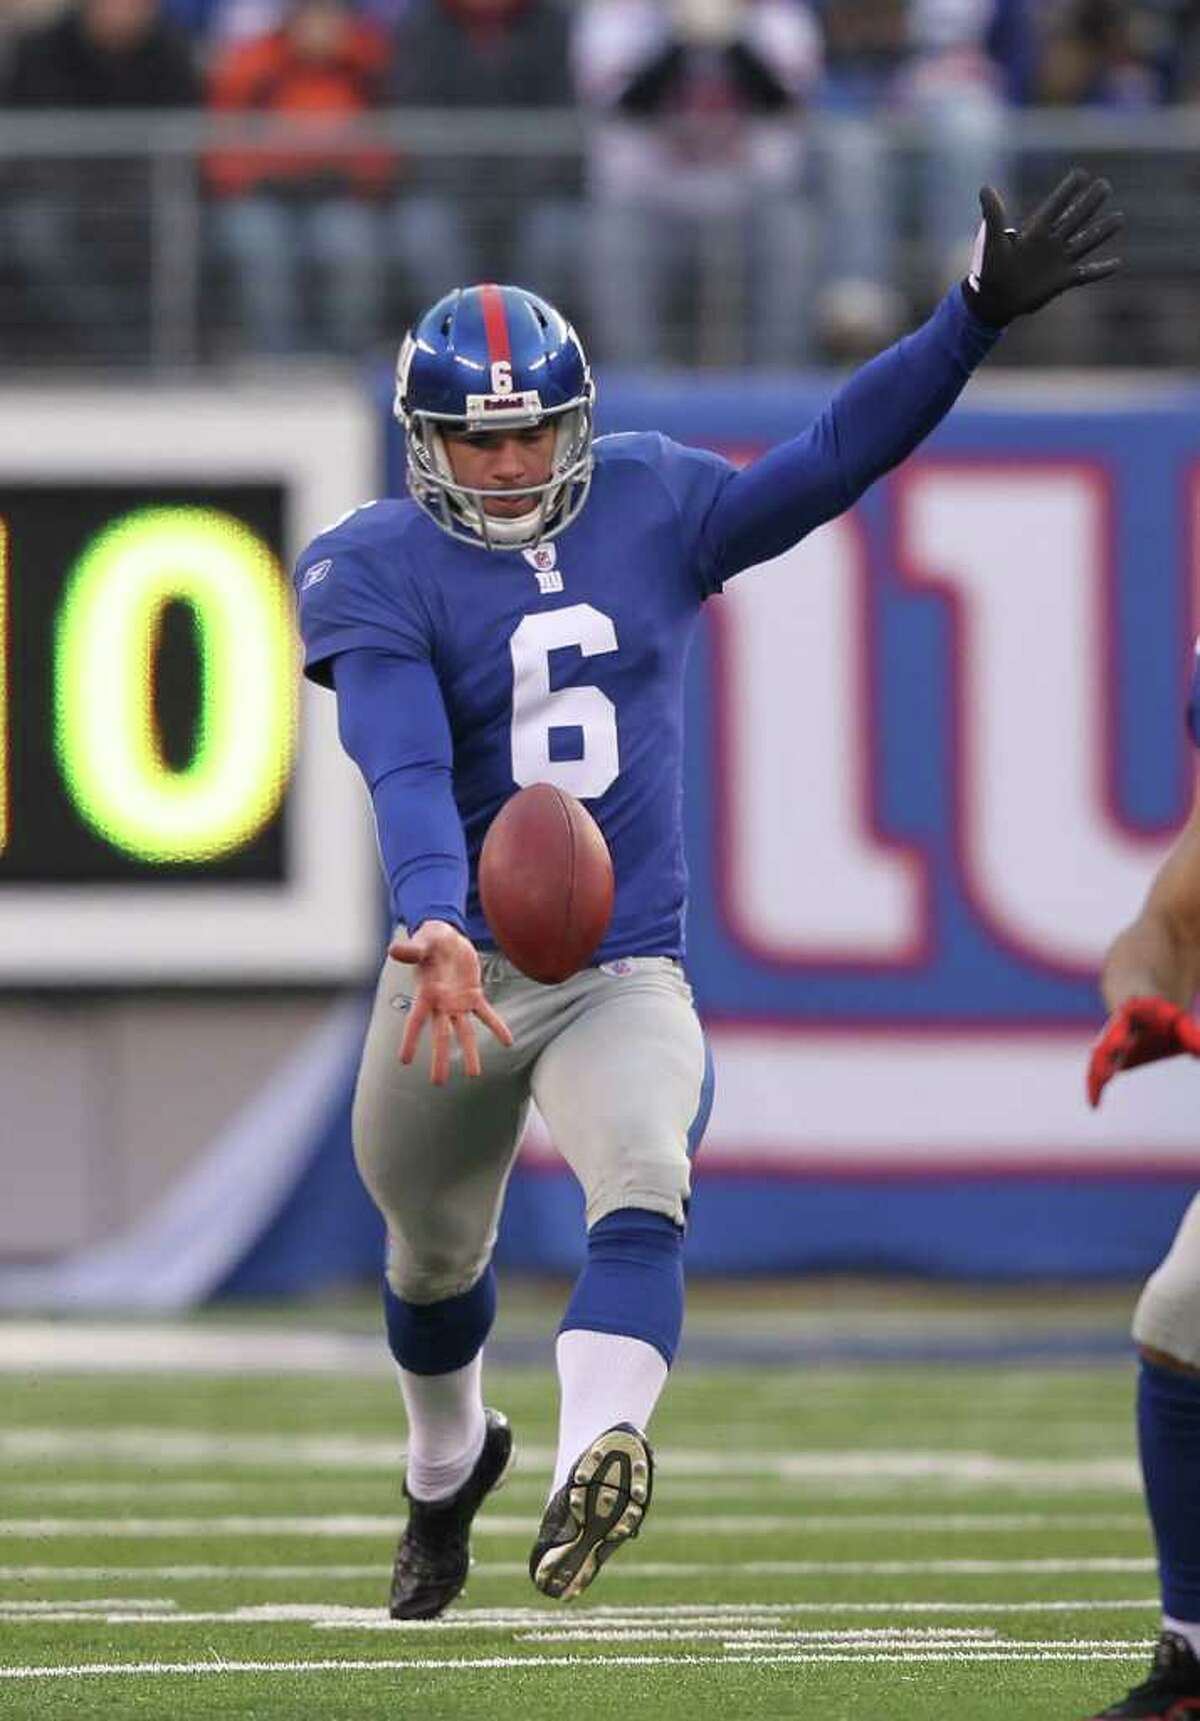 EAST RUTHERFORD, NJ - DECEMBER 19: Matt Dodge #6 of the New York Giants punts the ball to the Philadelphia Eagles during their game on December 19, 2010 at The New Meadowlands Stadium in East Rutherford, New Jersey. (Photo by Al Bello/Getty Images) *** Local Caption *** Matt Dodge